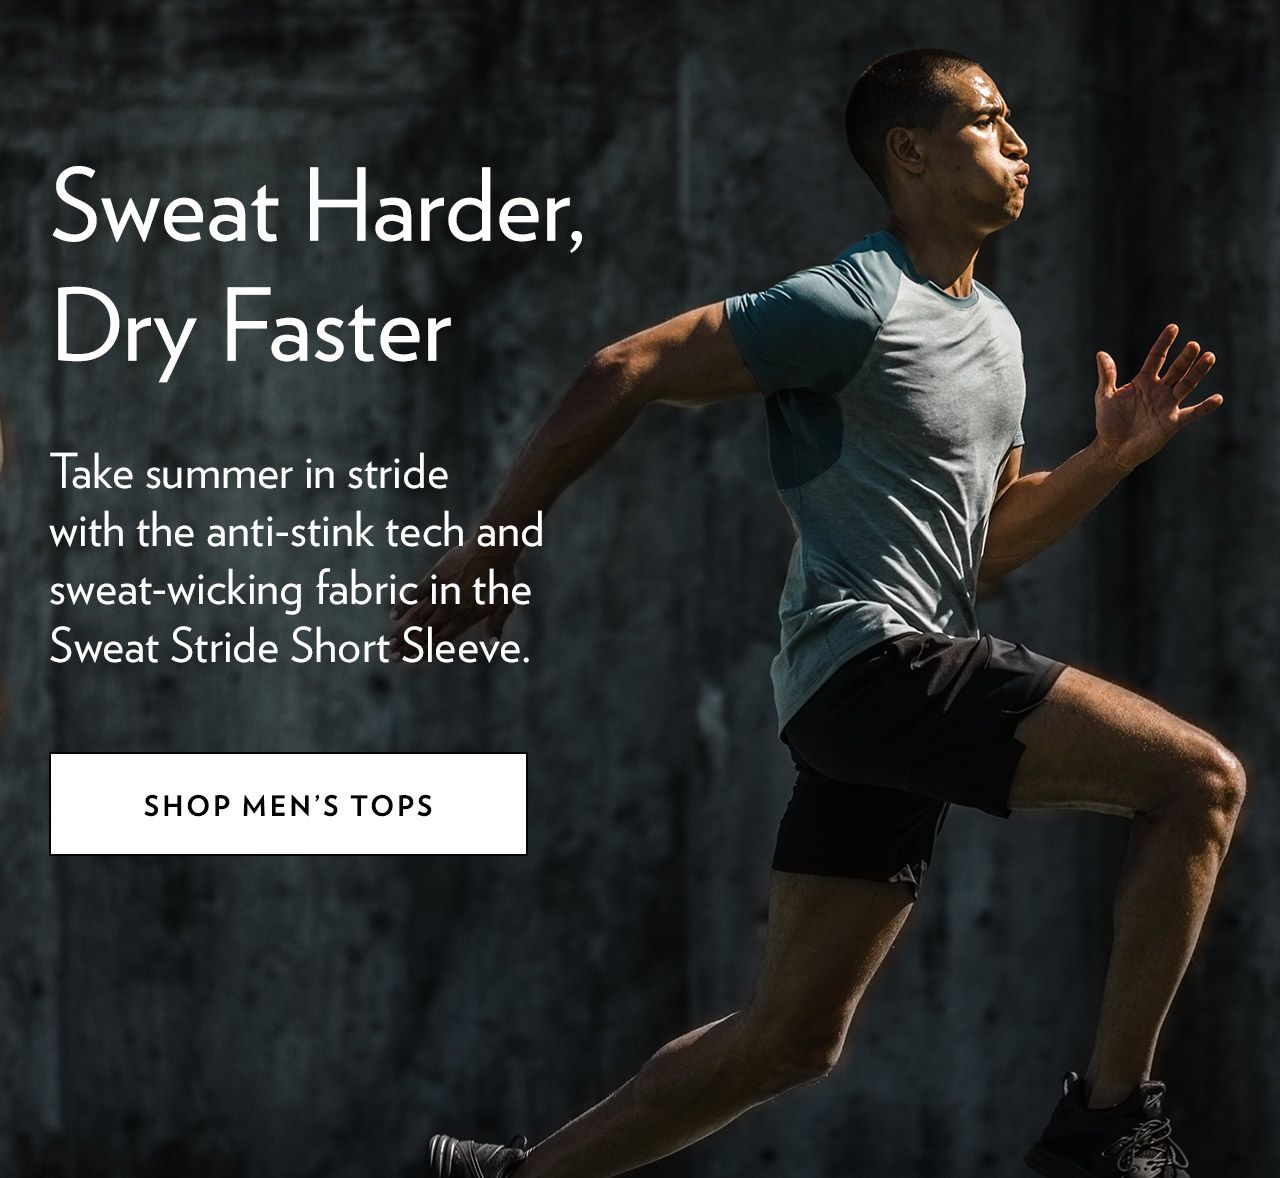 Sweat Harder, Dry Faster - SHOP MEN'S TOPS